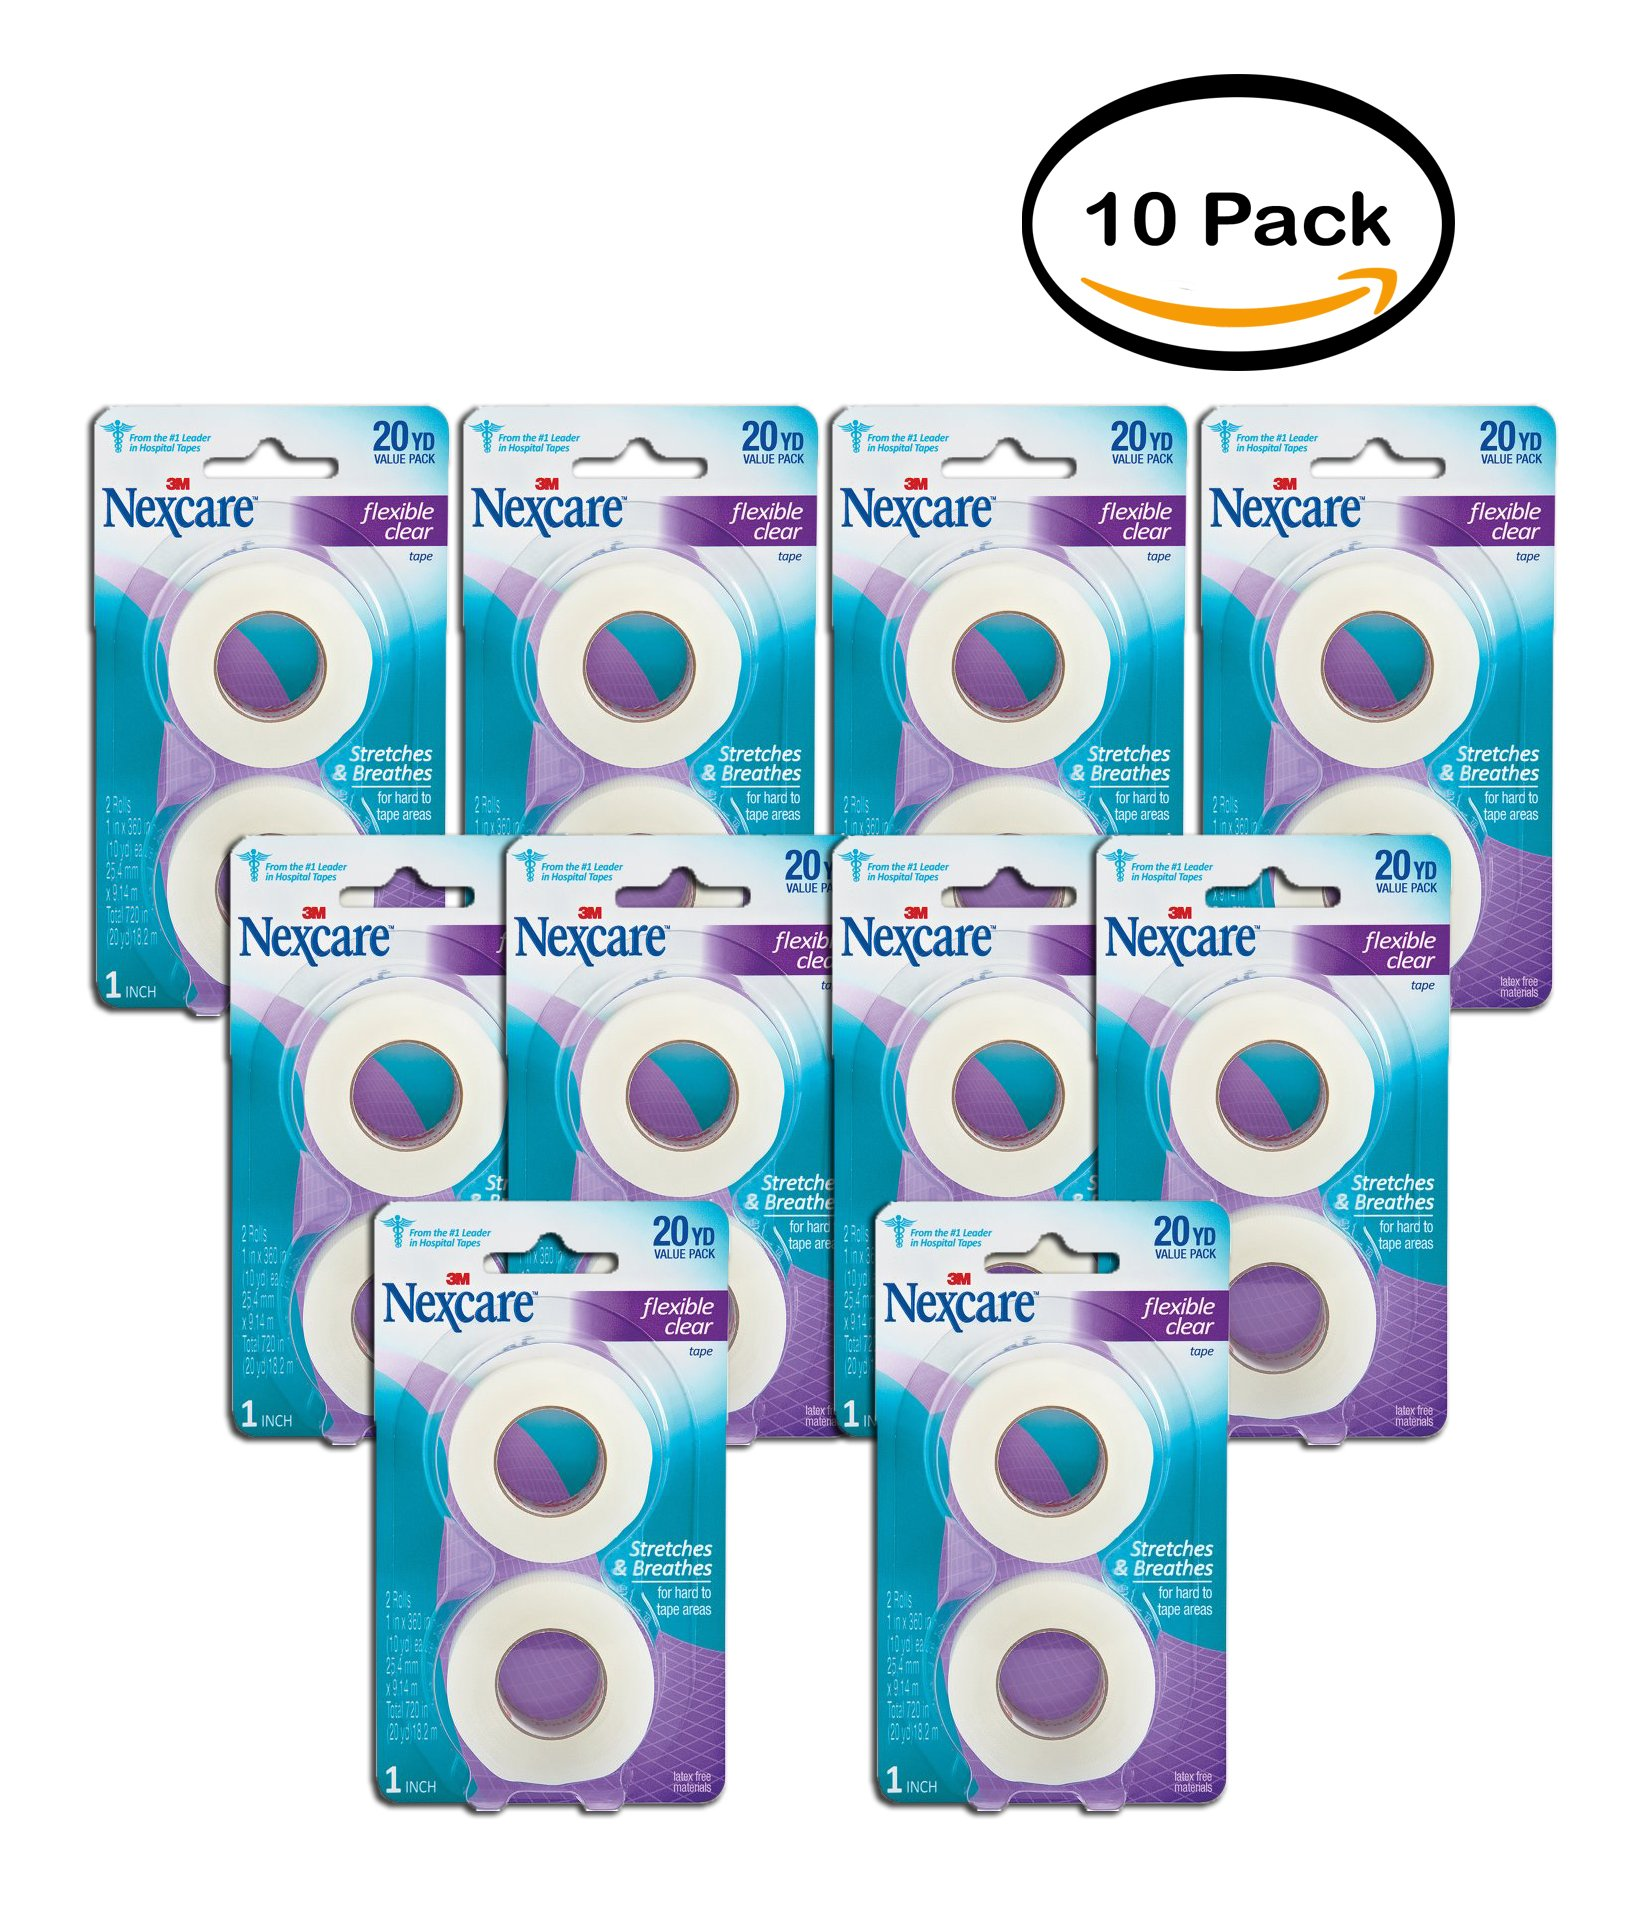 PACK OF 10 - Nexcare Flexible Clear First Aid Tape, 771-2PK, 1 in x 10 yds, 2 Rolls by Nexcare